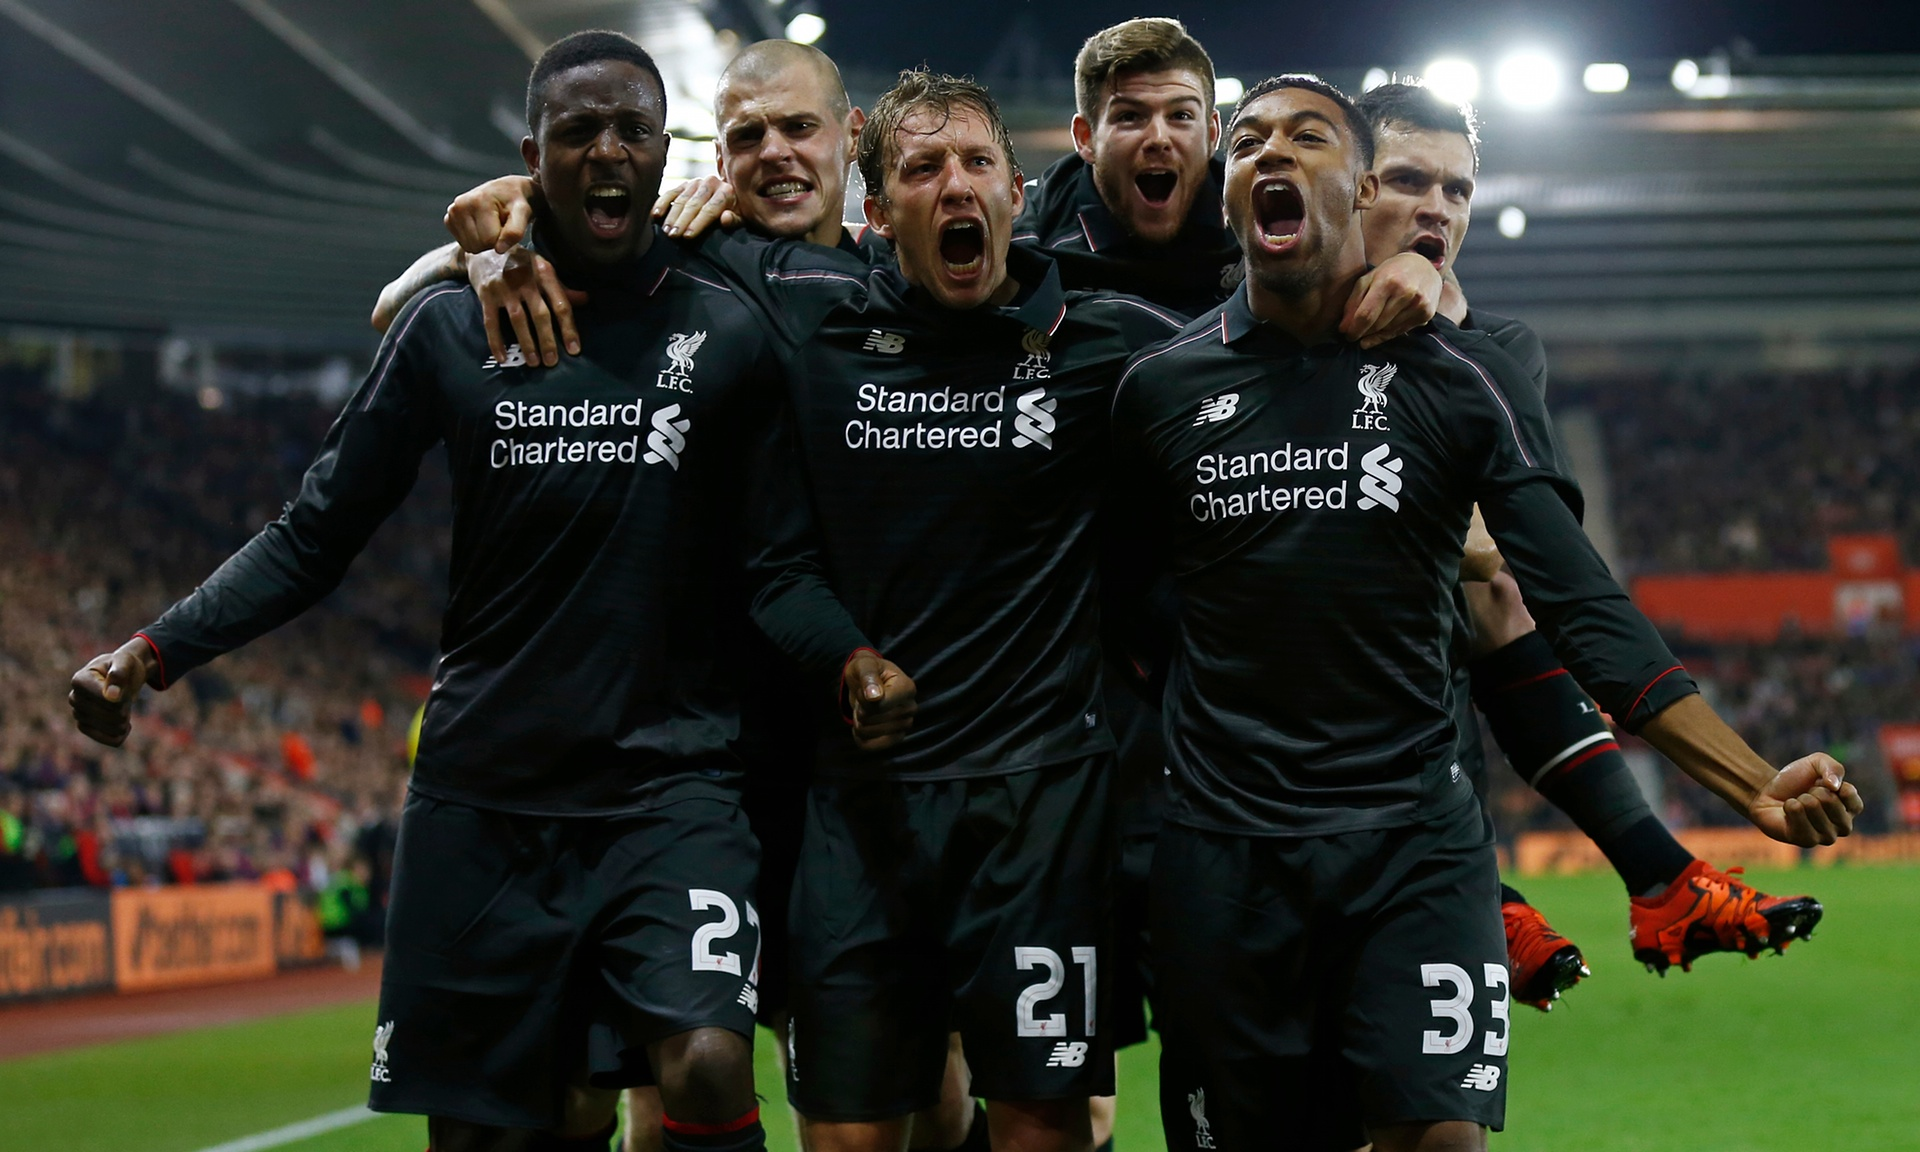 Soccer Streams Everton Liverpool Streaming Reddit How To Watch Soccer Games Live On phone